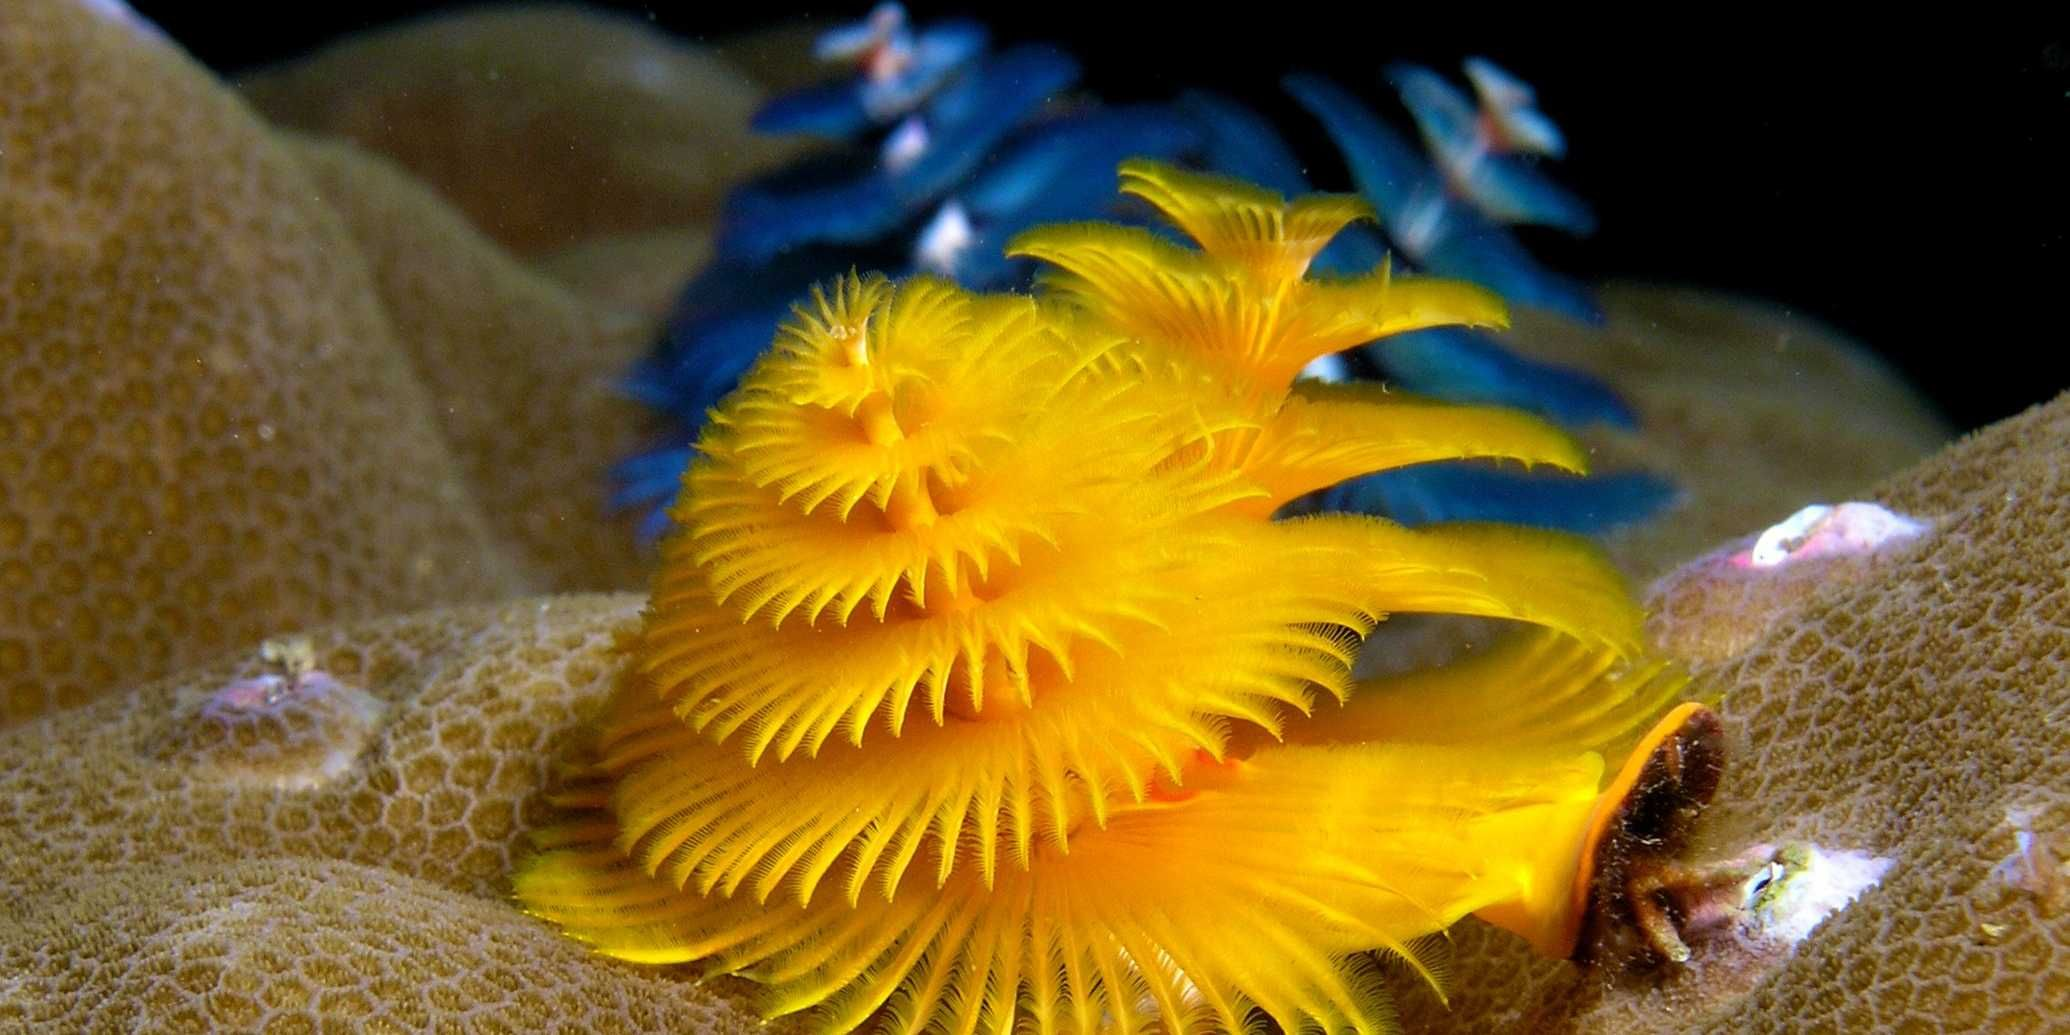 23 Fantastic Images Of The Incredibly Weird Things In The Ocean Ocean Creatures Underwater Creatures Worms